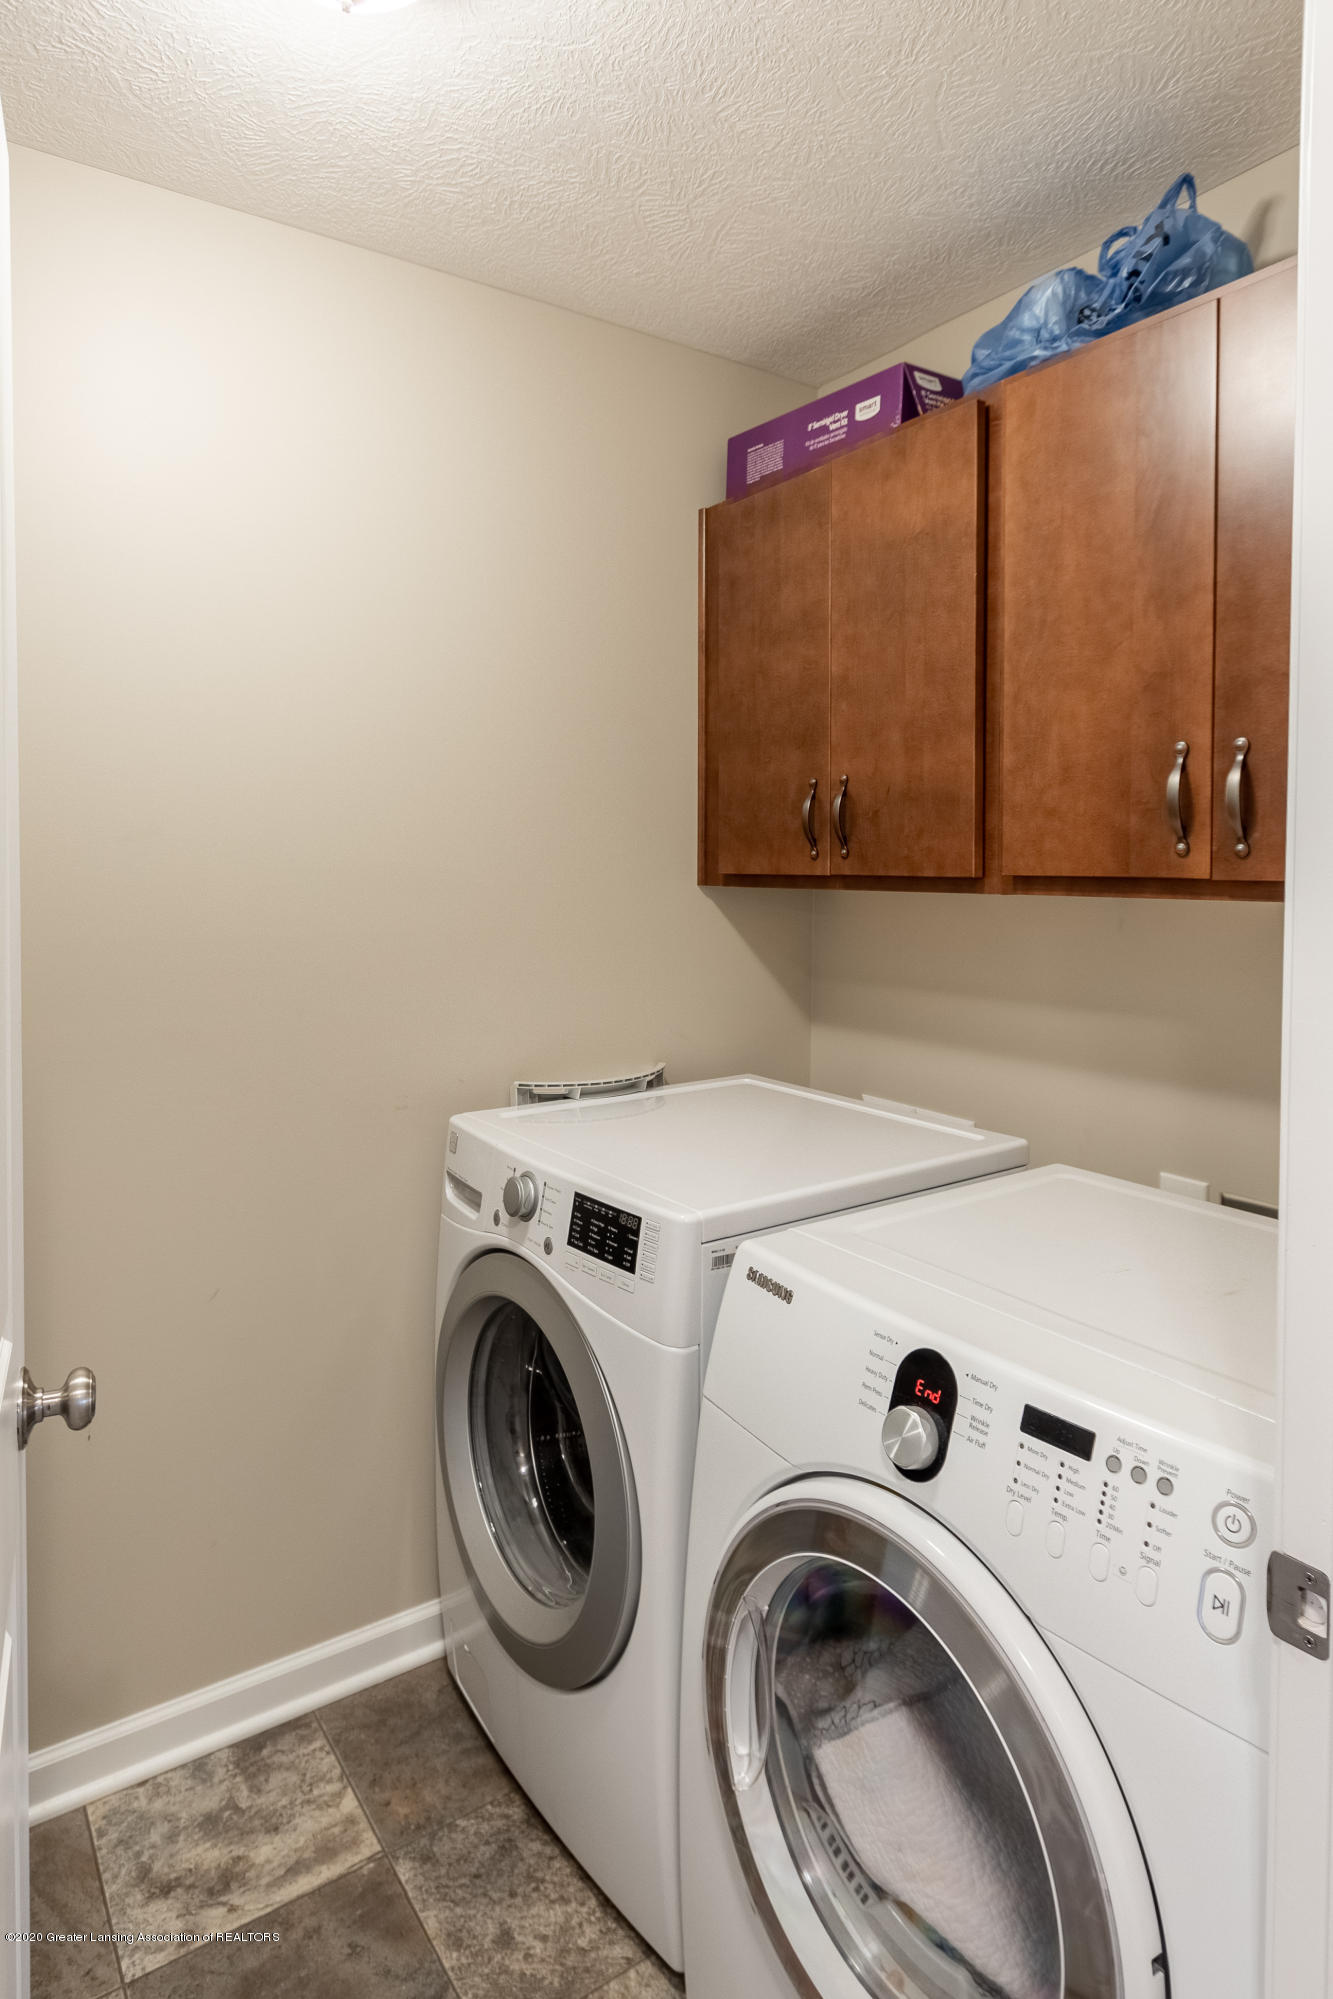 3758 Shearwater Ln - 2nd Floor Laundry - 42